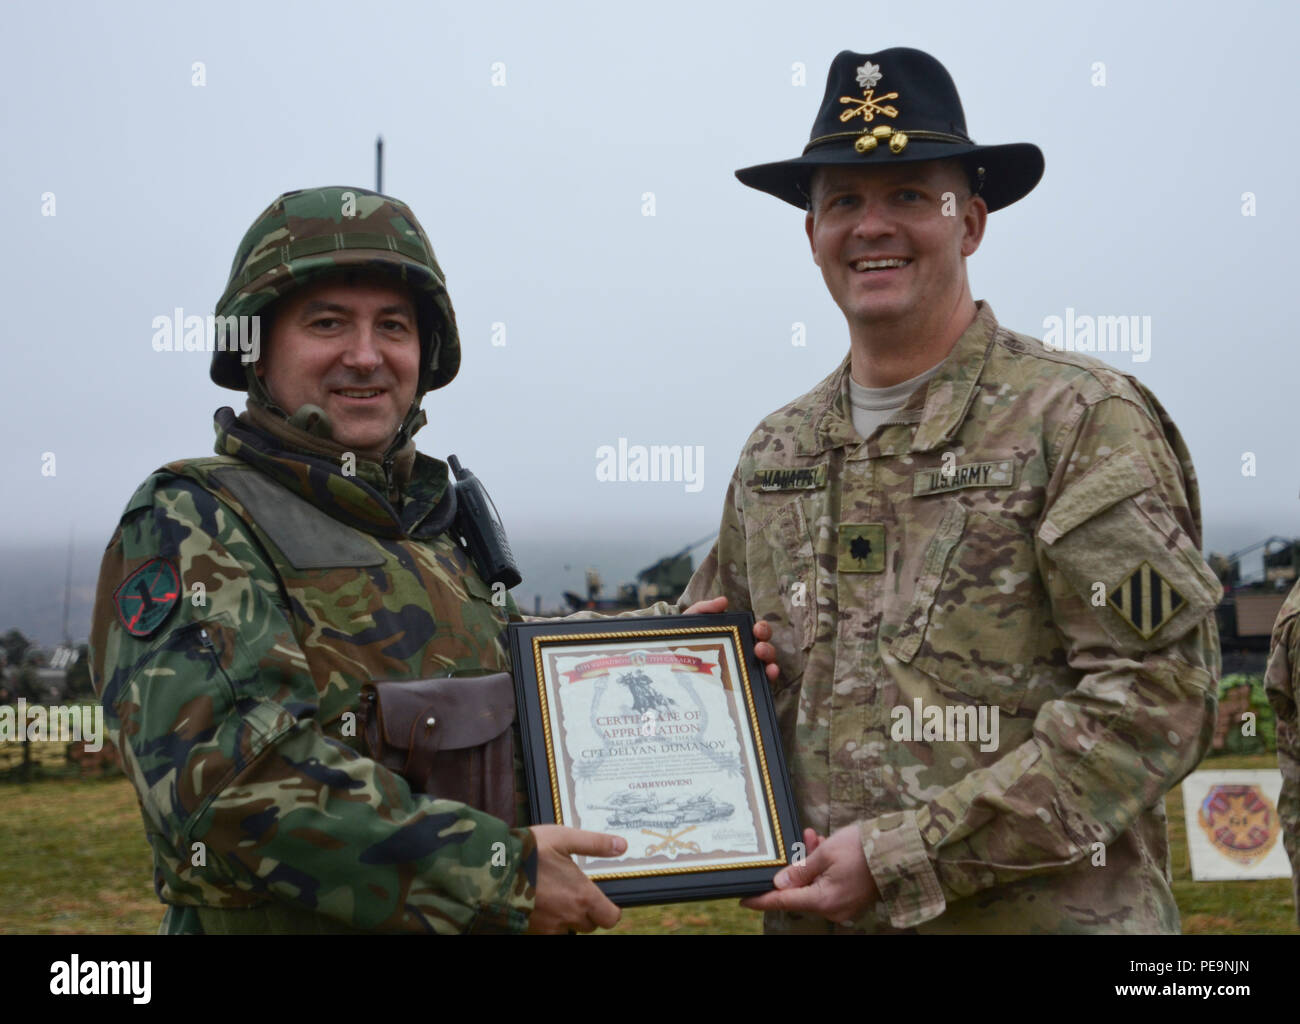 U.S. Army Lt. Col. Christopher Mahaffey (right), the commander of 5th Squadron, 7th Cavalry Regiment, 3rd Infantry Division, stationed at Fort Stewart, Ga., presents Bulgarian Capt. Delyan Dumanov (left), of 61st Mechanized Brigade, a certificate of appreciation during the closing ceremony of Exercise Peace Sentinel at Novo Selo Training Center, Bulgaria, Nov. 24, 2015. (U.S. Army photo by Staff Sgt. Steven M. Colvin/Released) - Stock Image